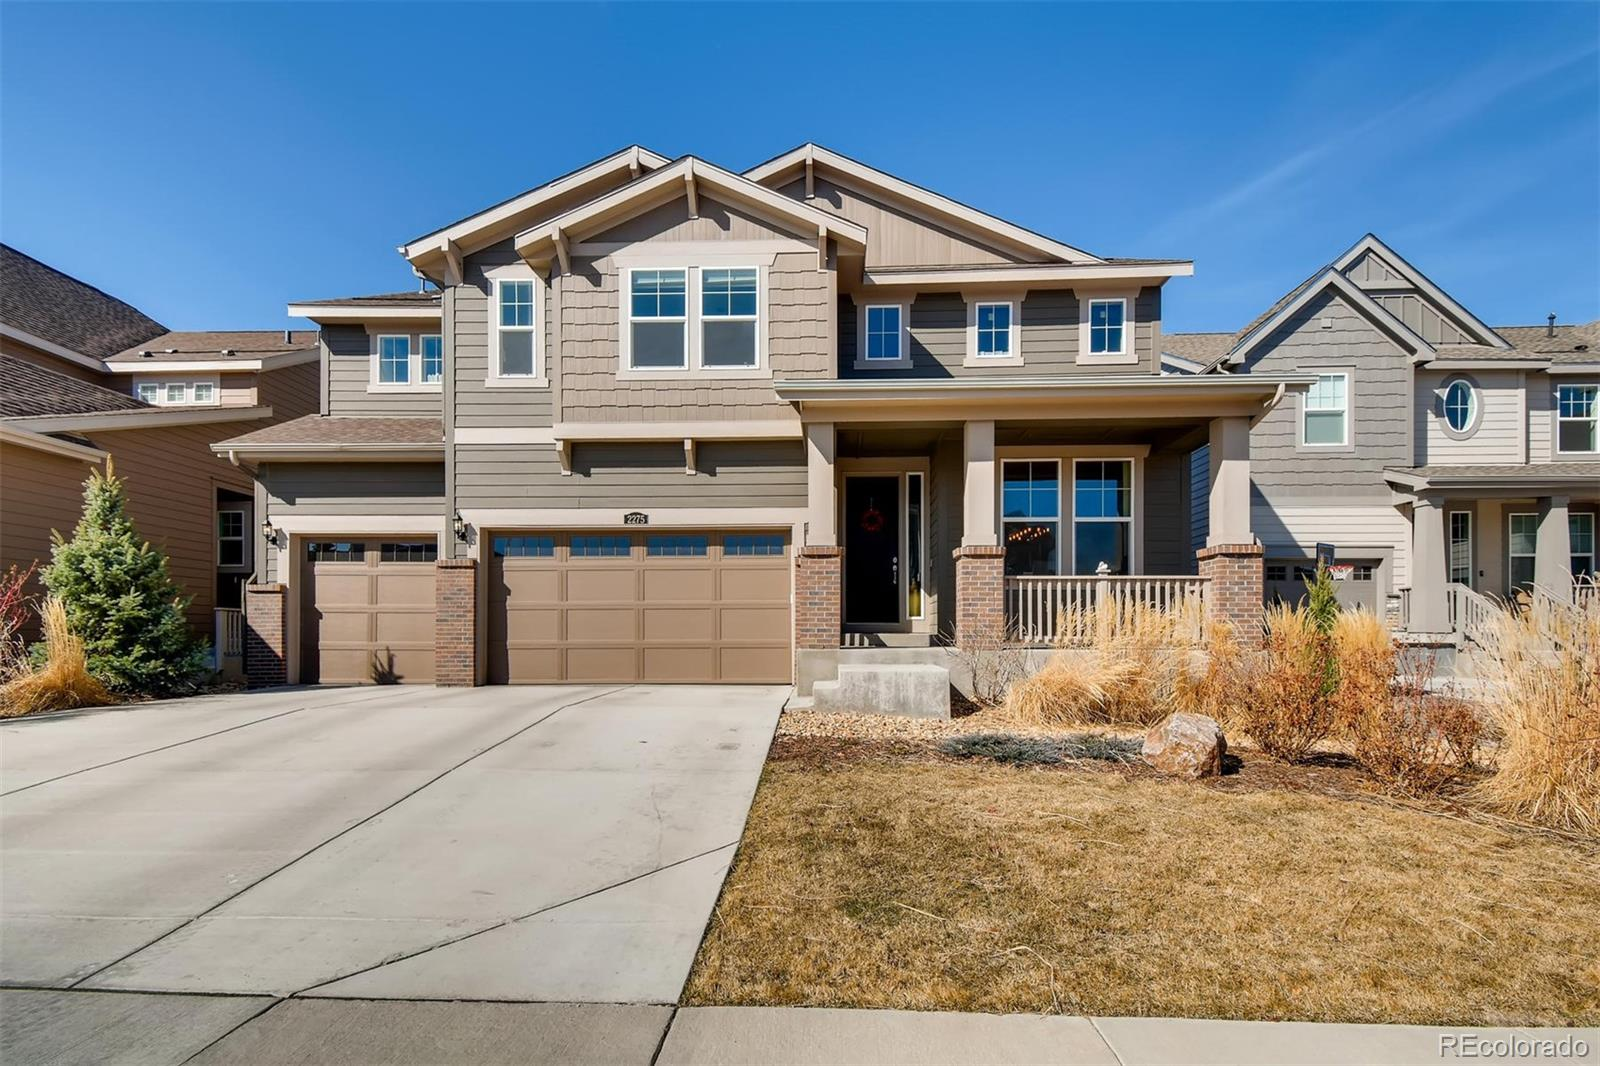 MLS# 6999395 - 1 - 2275 Provenance Court, Longmont, CO 80504